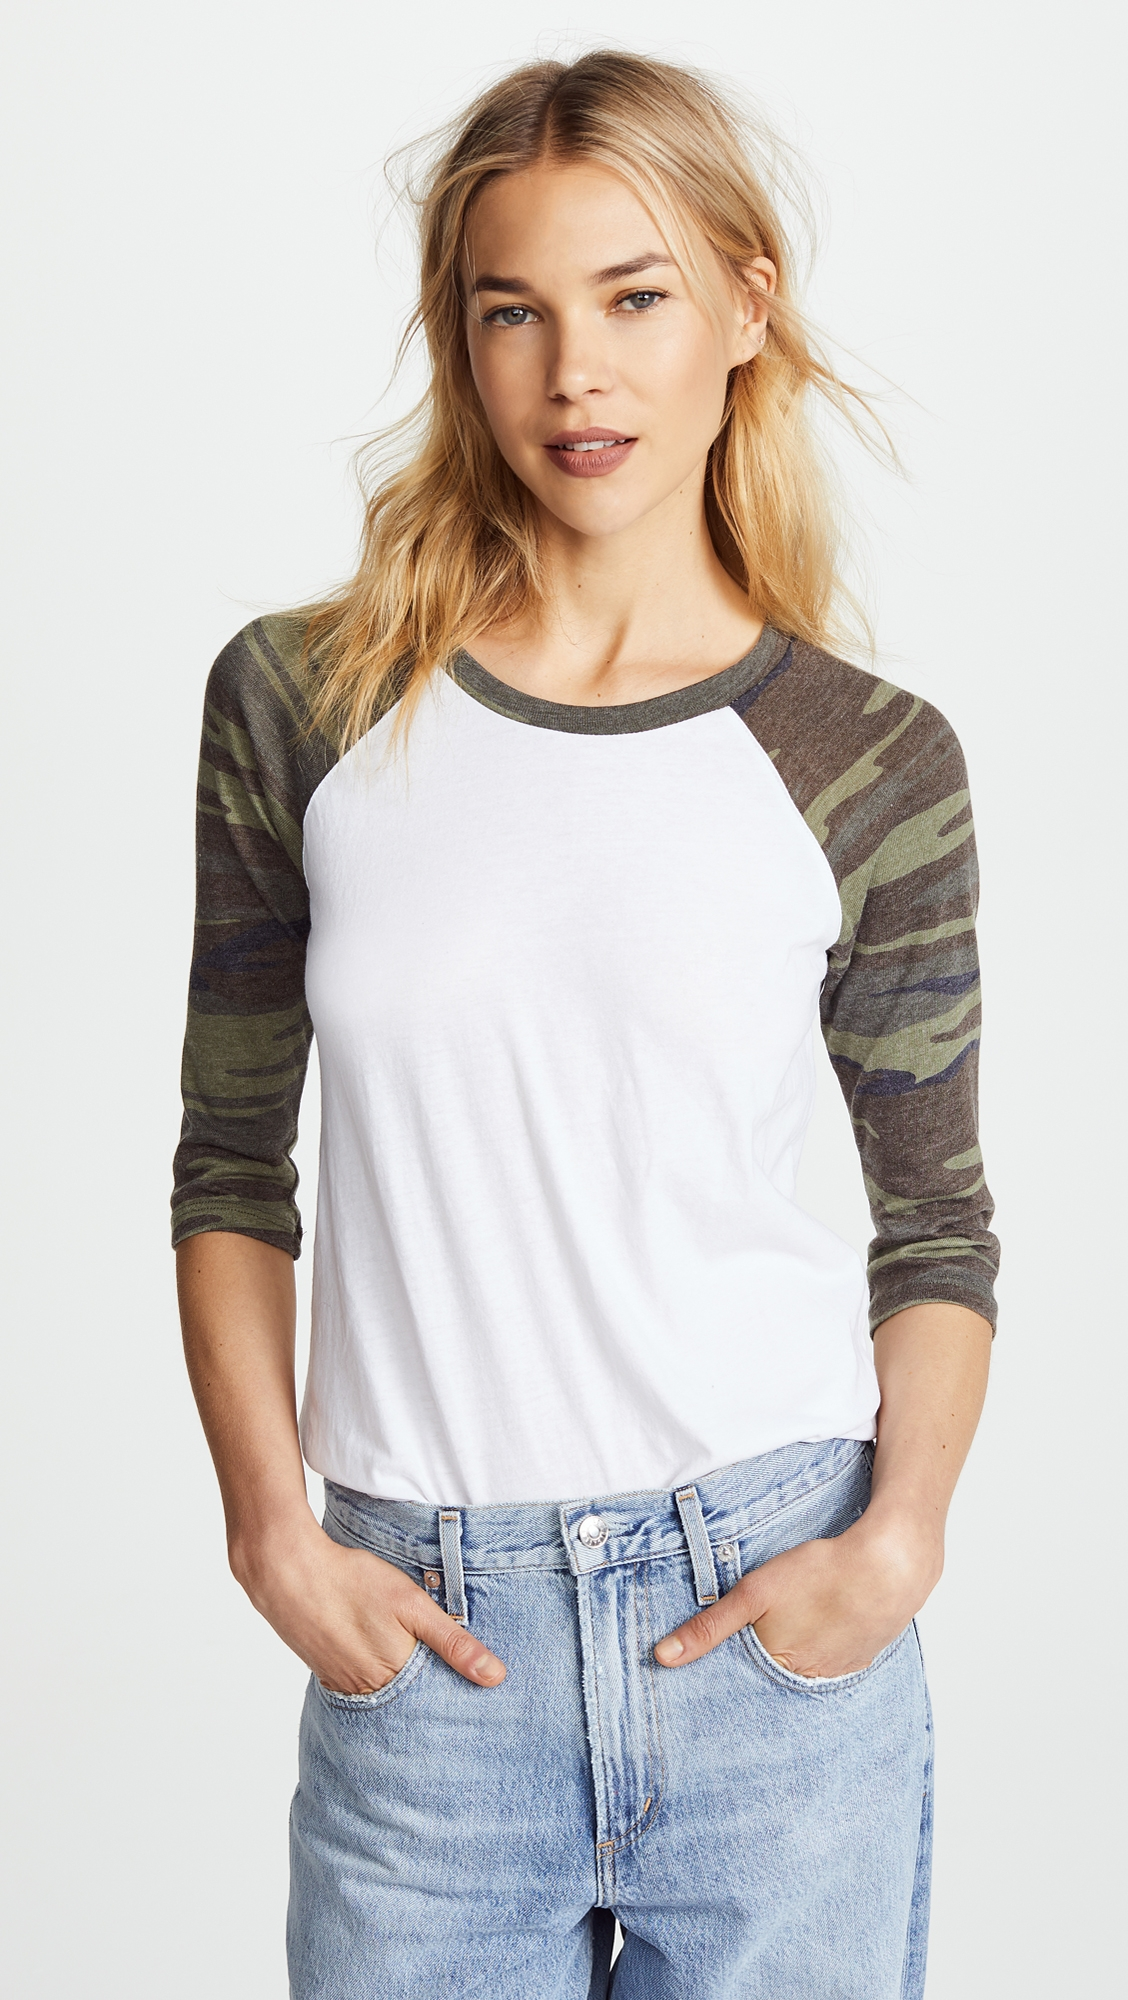 db92e140b Camo Baseball Tee | Stitch fix Needs | Baseball shirts, Baseball ...